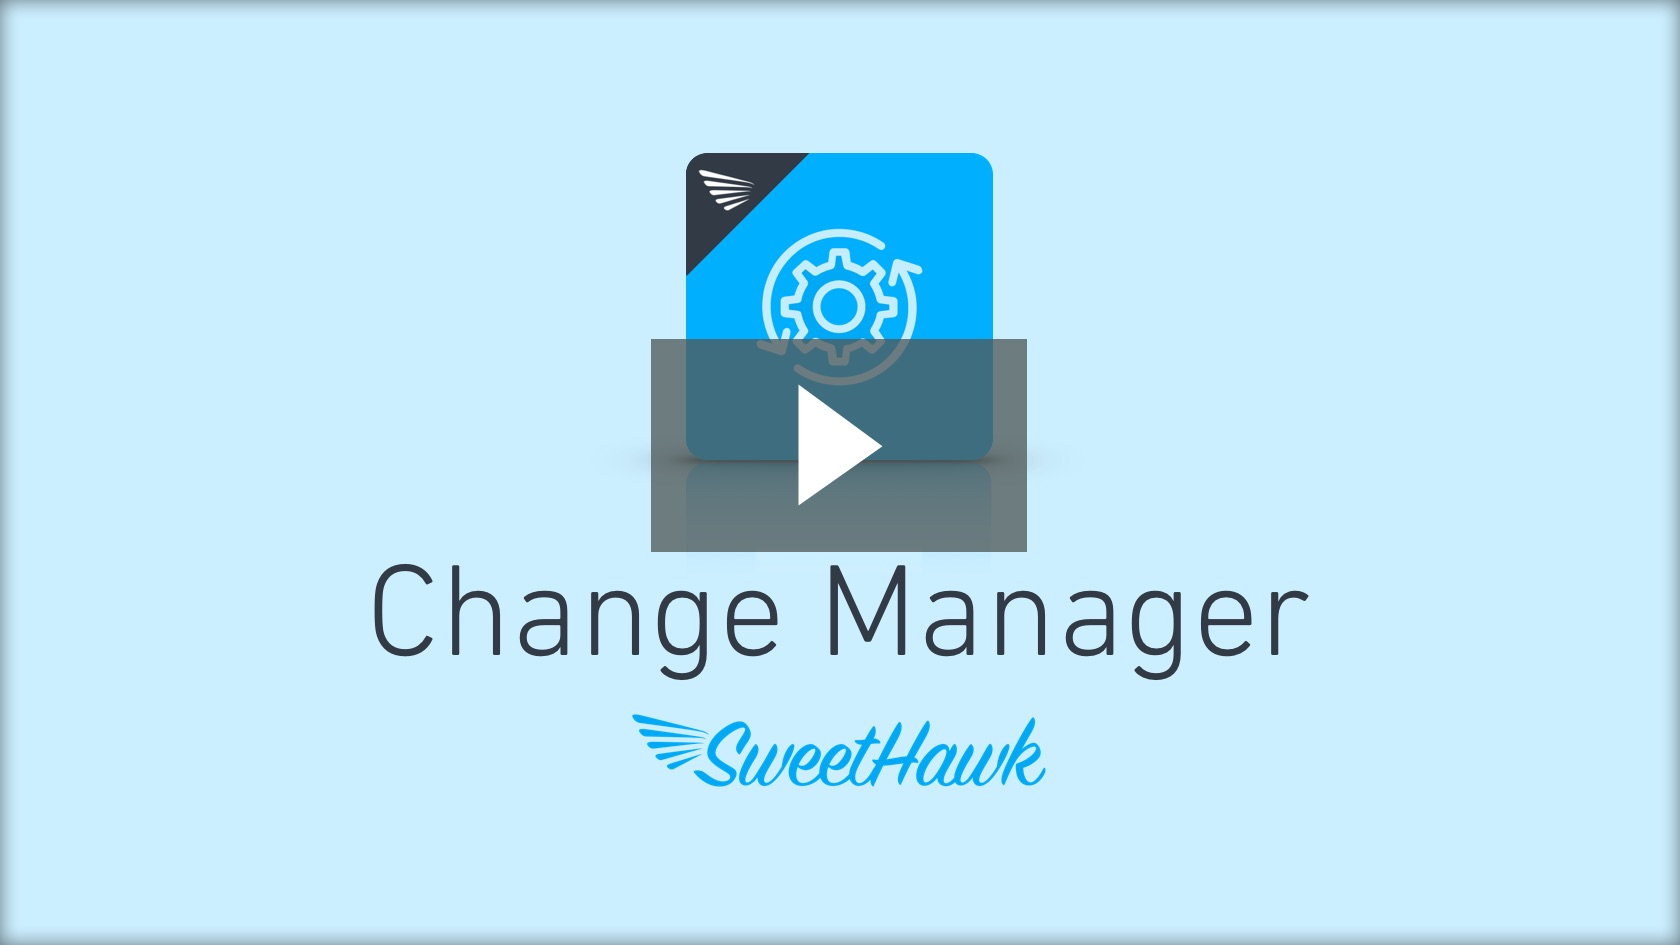 Watch the Change Manager app video